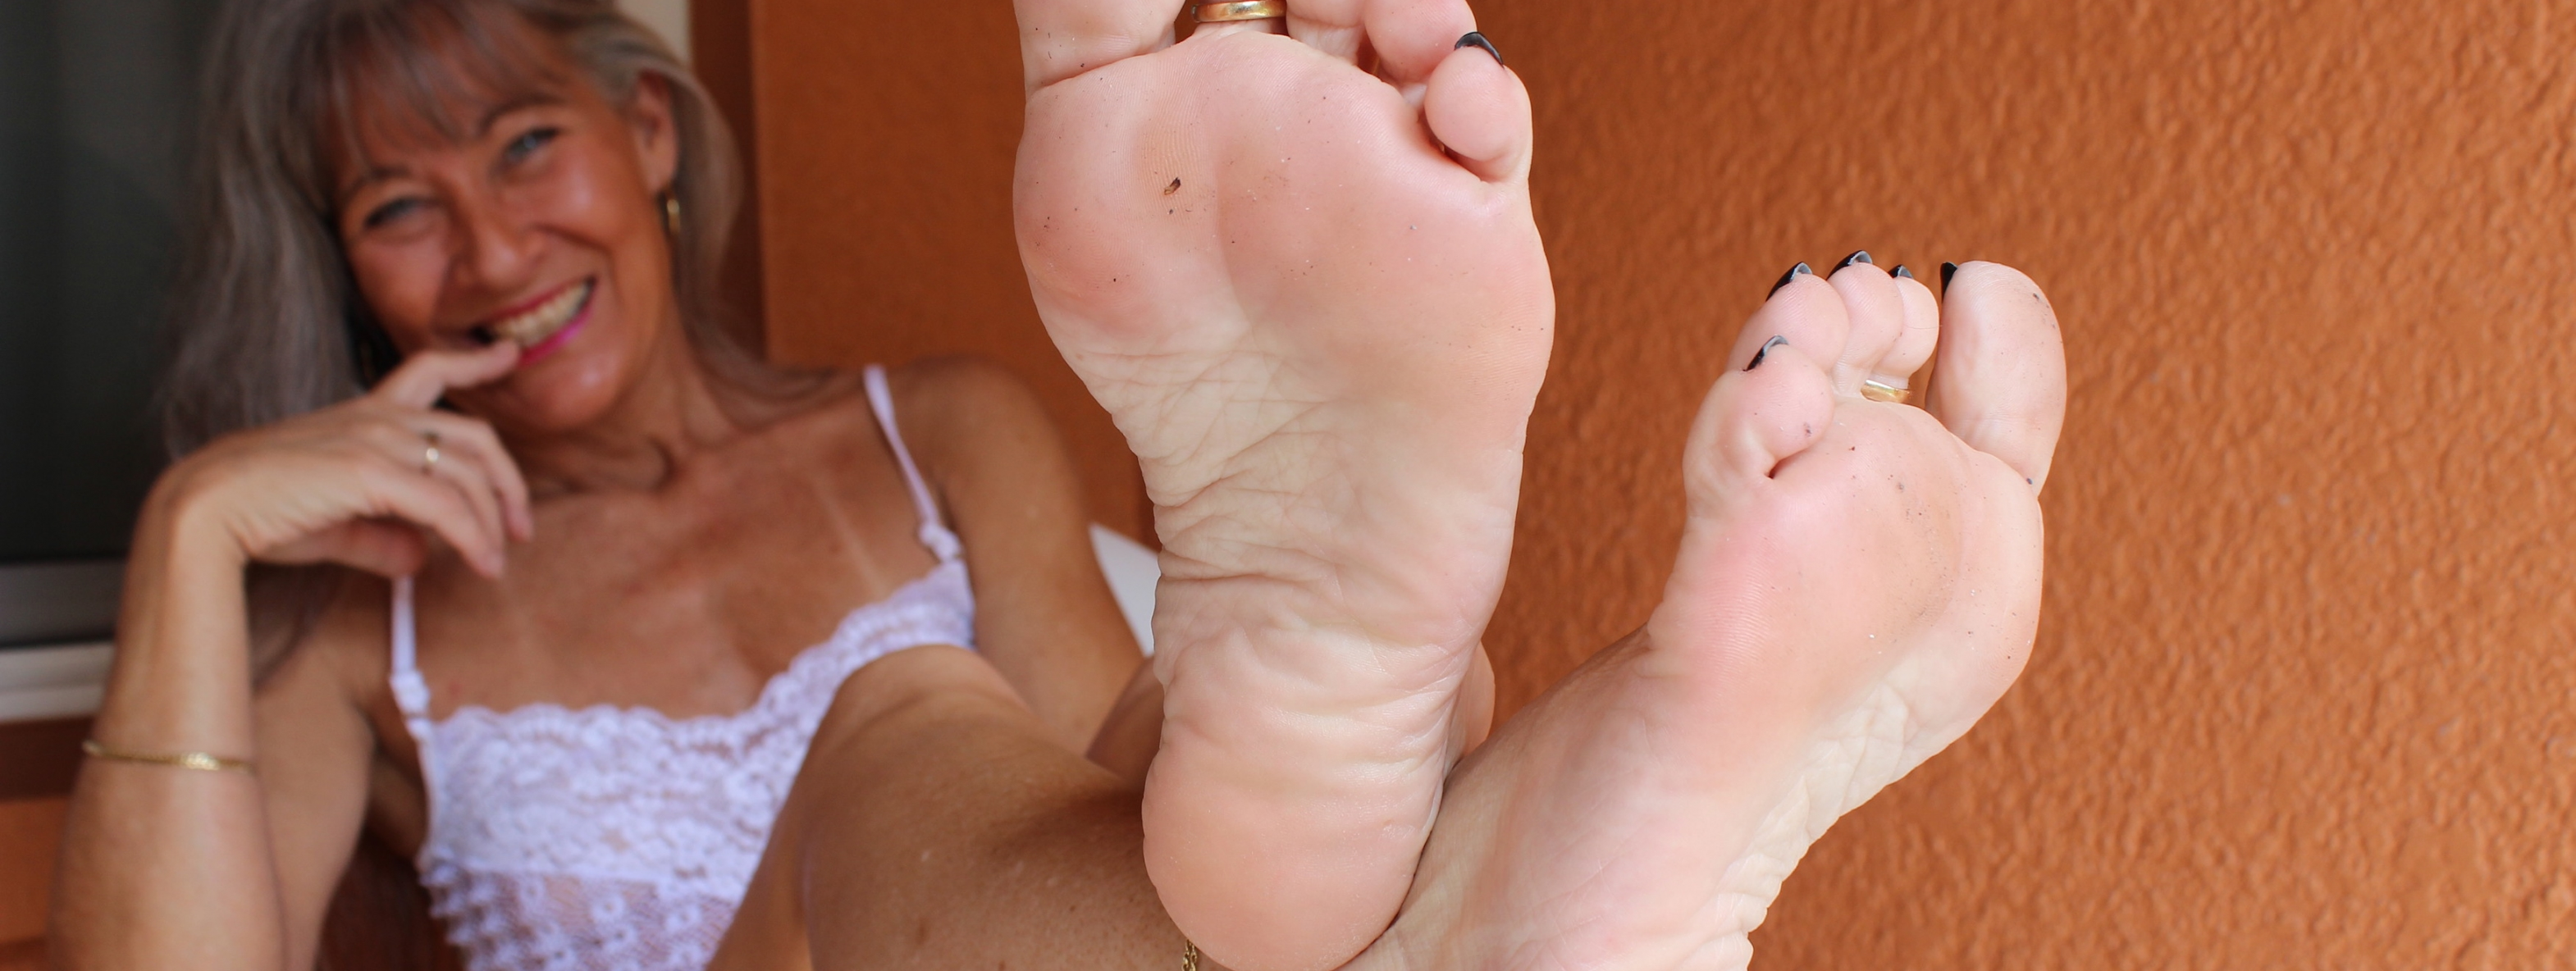 content/dirty_soles_3/8.jpg